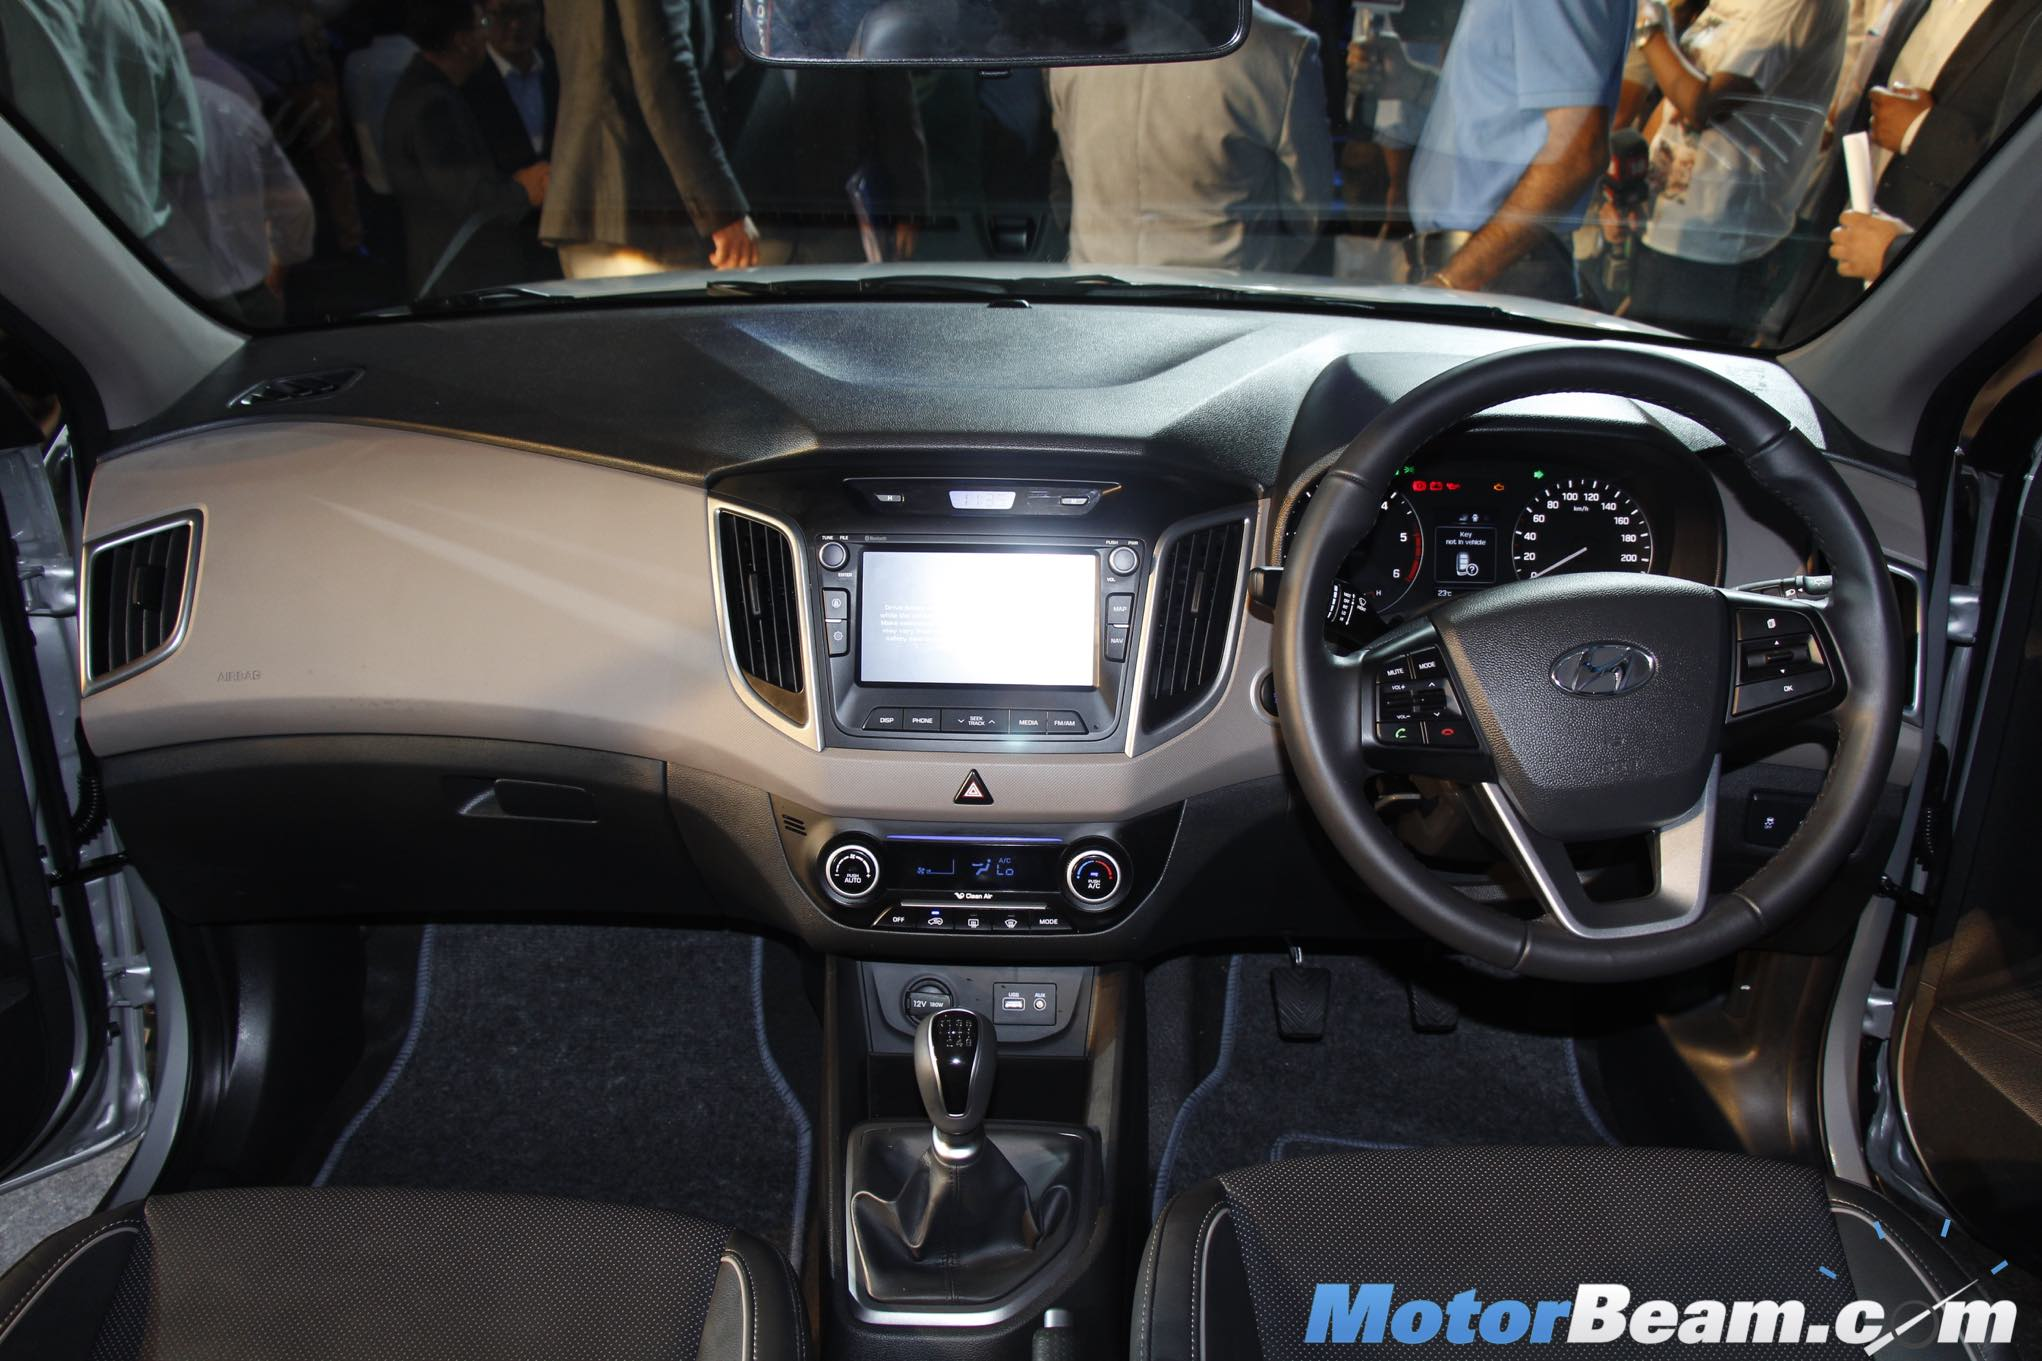 2015 Hyundai Creta Officially Launched Prices Start At Rs X Lakhs